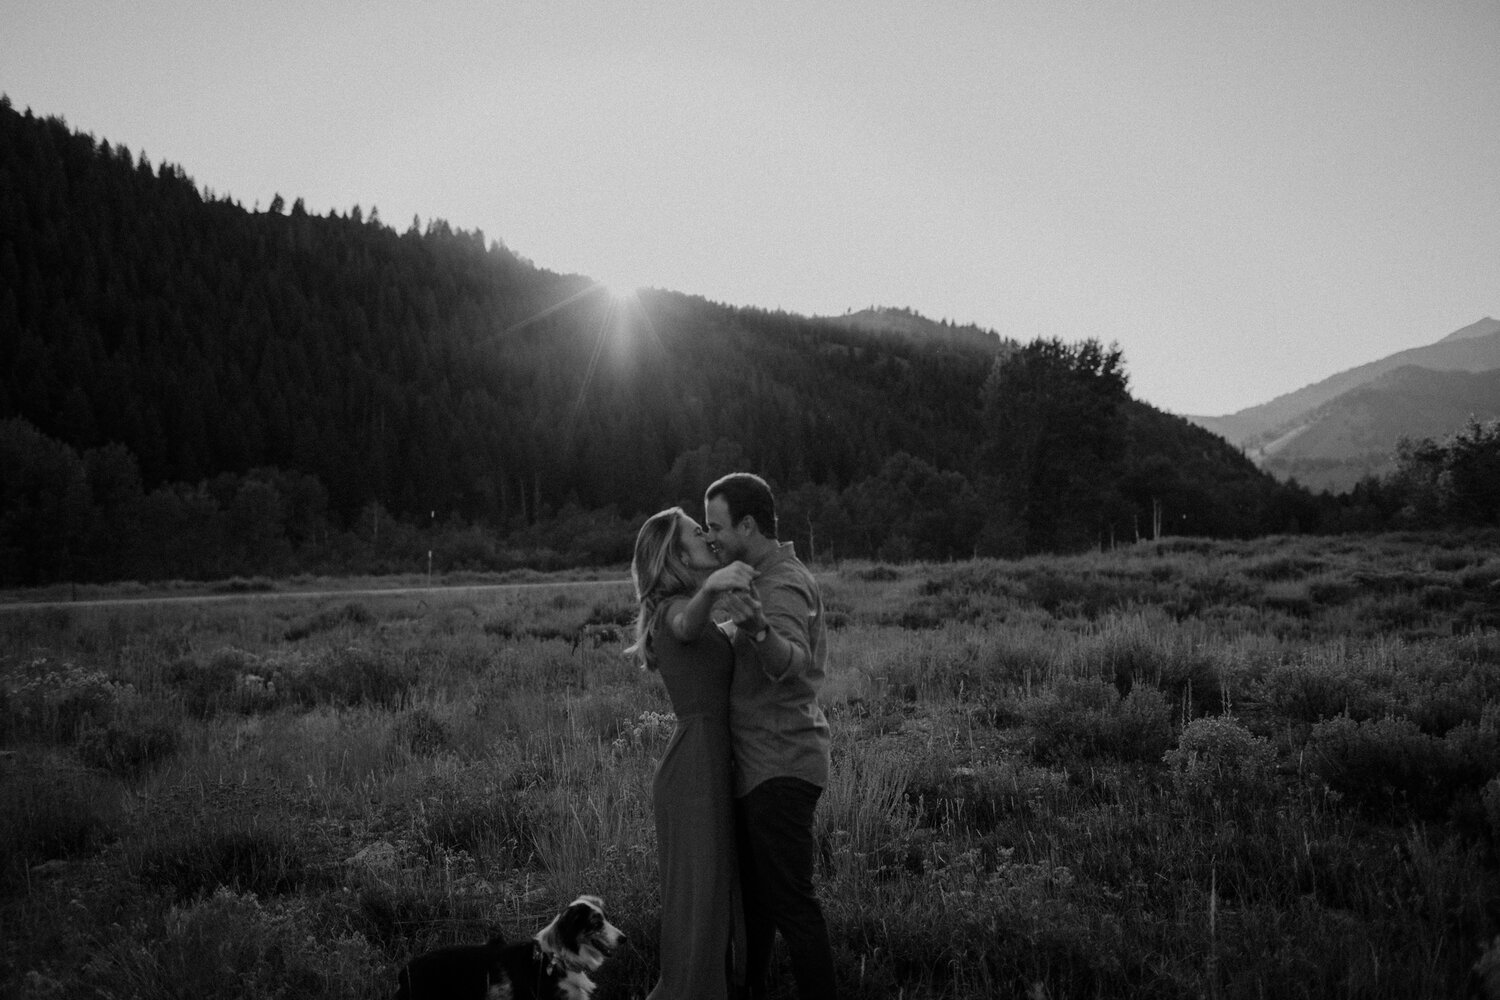 sun-valley-engagement-photos-christinemarie-8.jpg